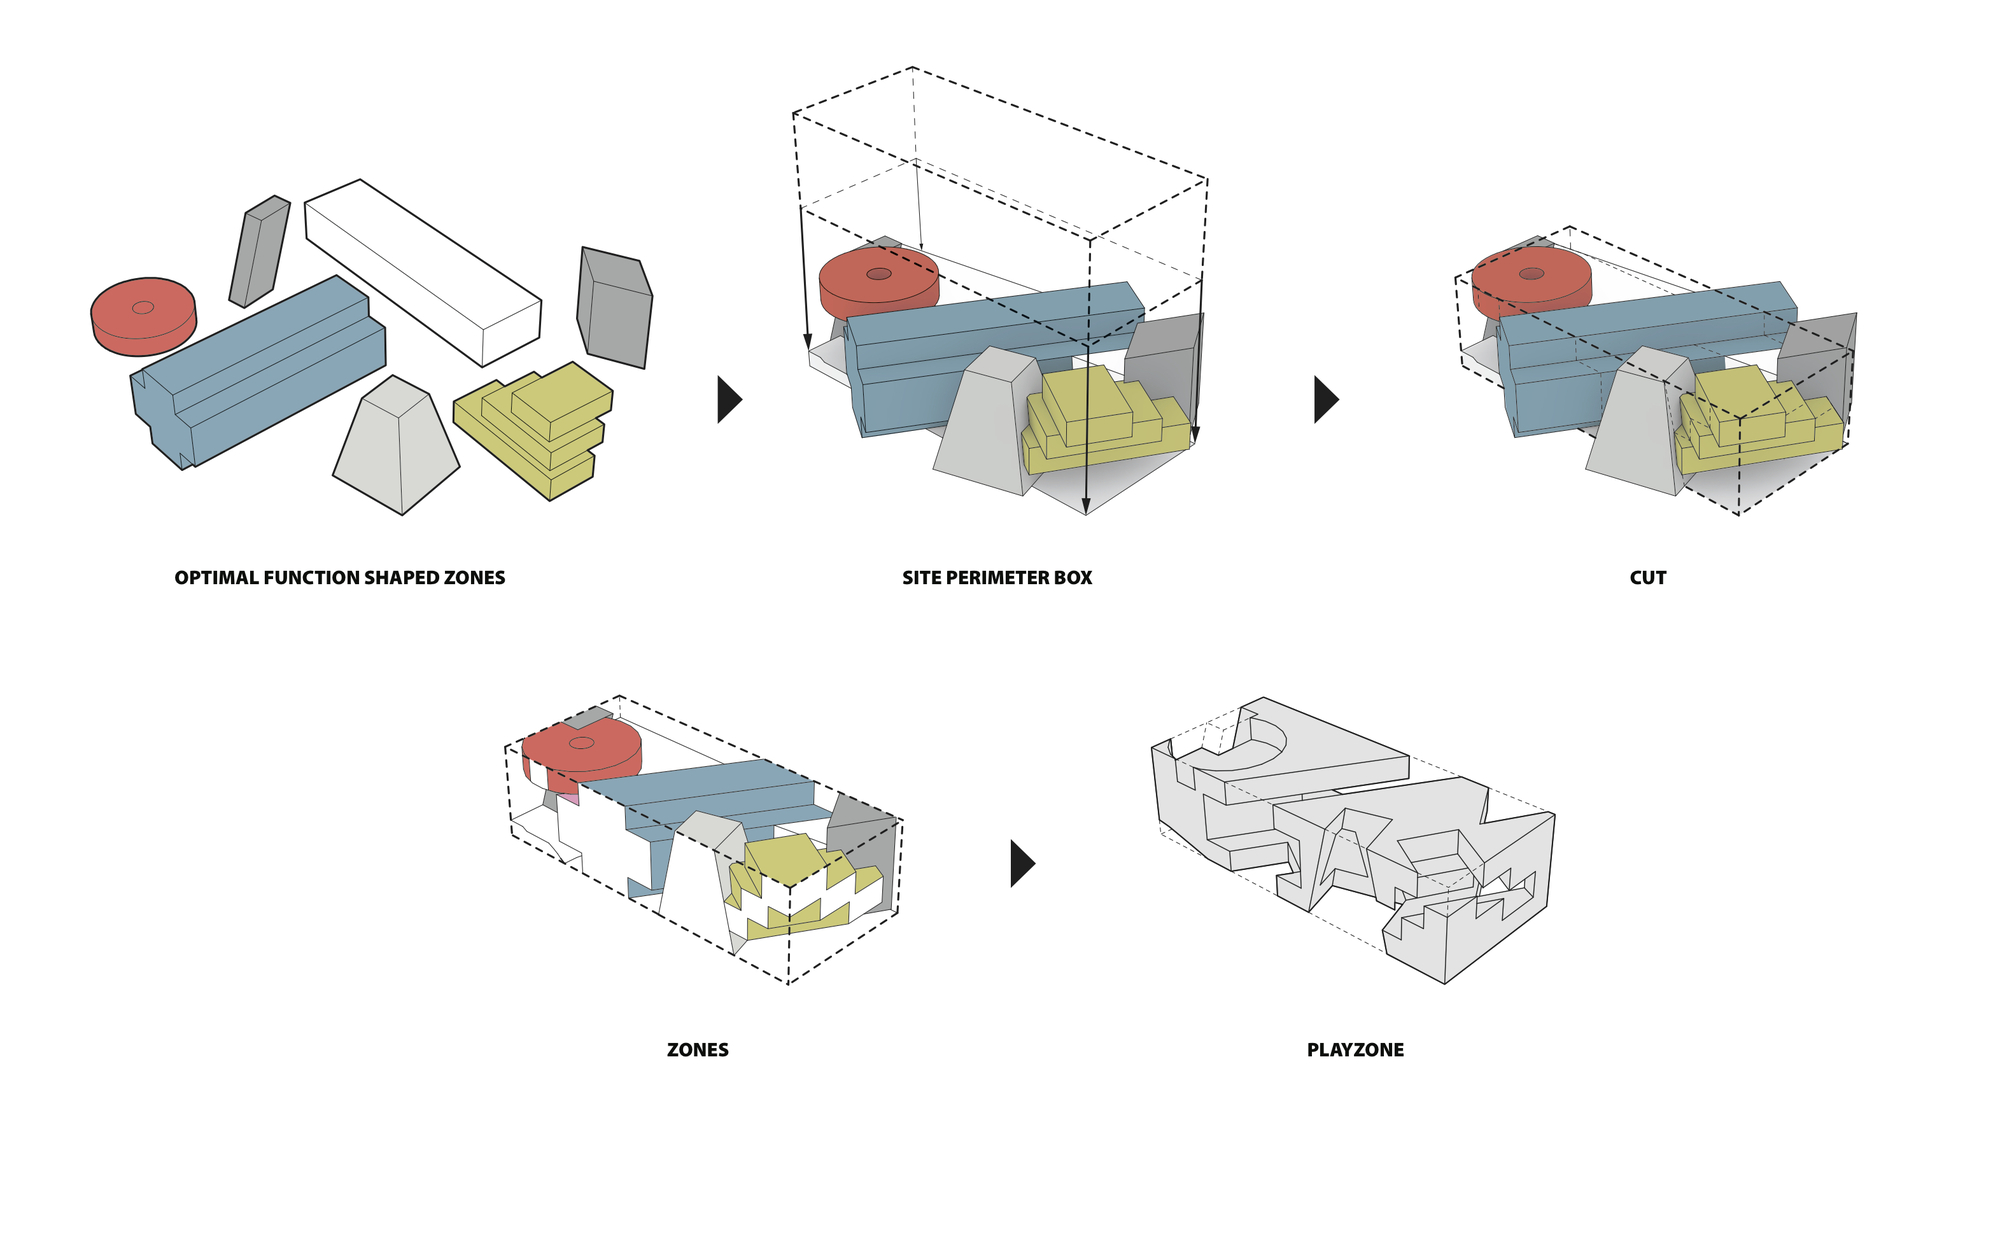 Mvrdv adept 27 for The concept of space in mamluk architecture